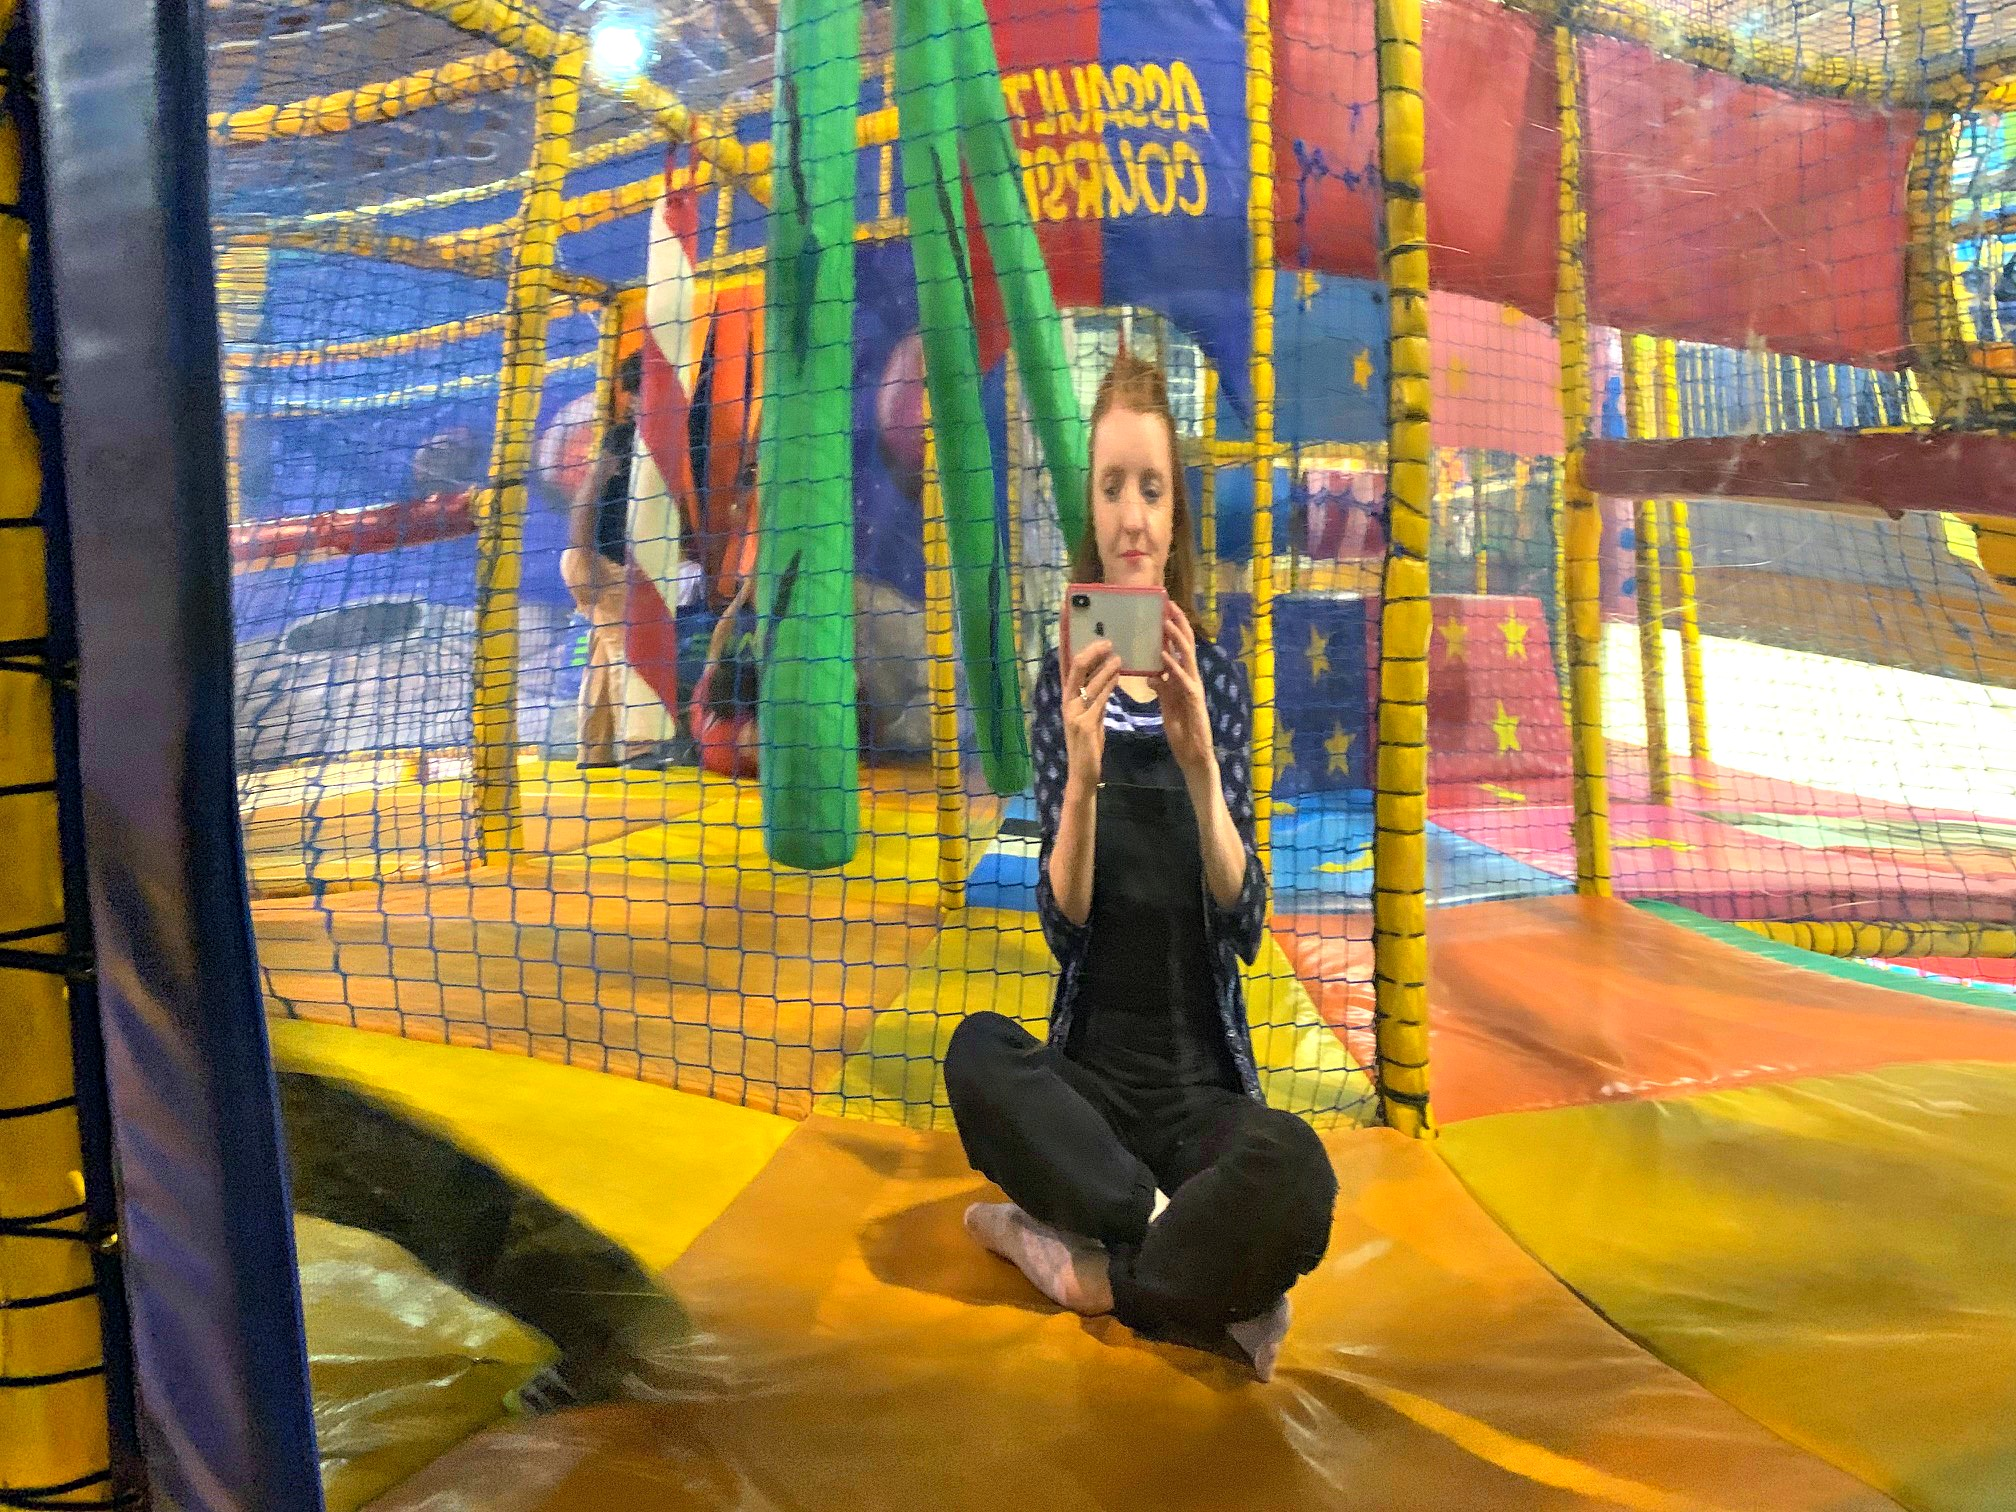 Soft play - 12 things that would make it a million times better for parents